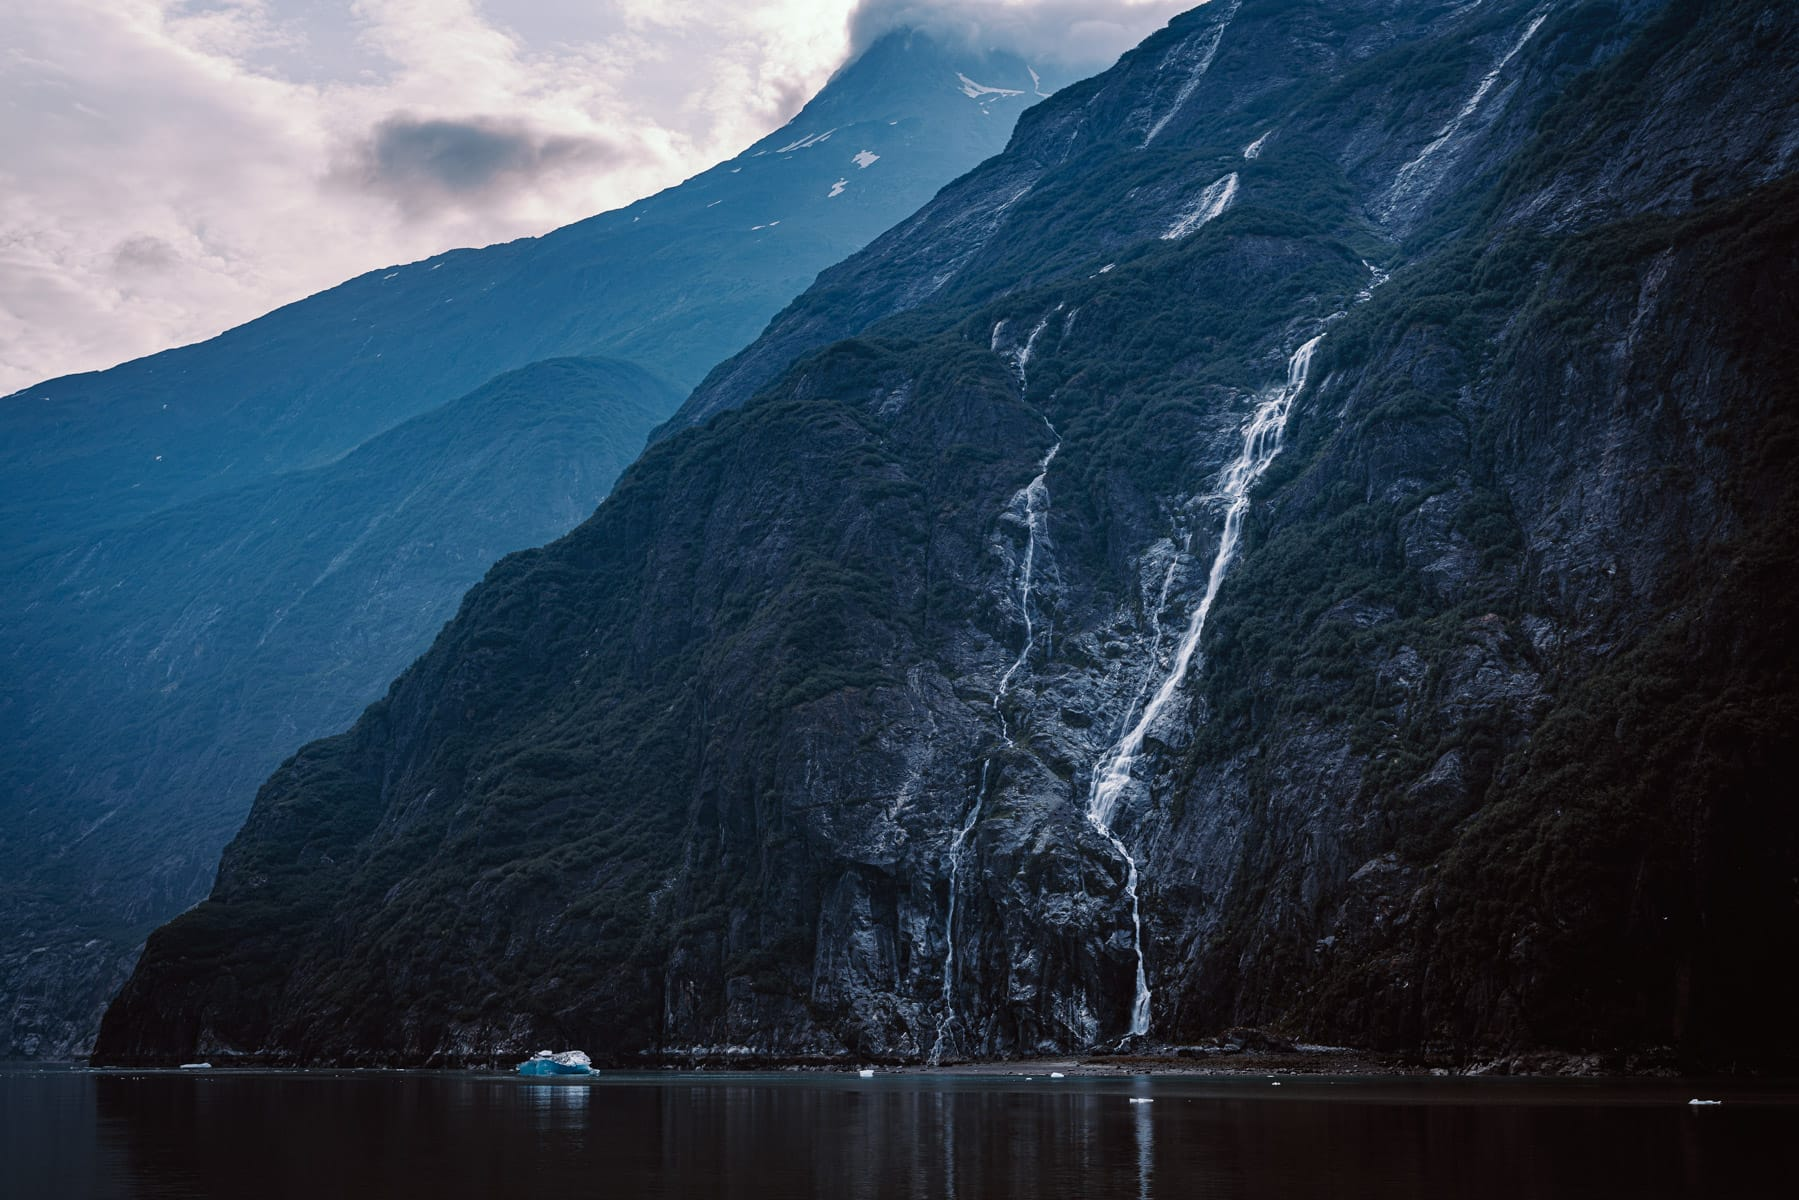 Water cascades down the side of a mountain in Alaska's Tracy Arm Fjord.